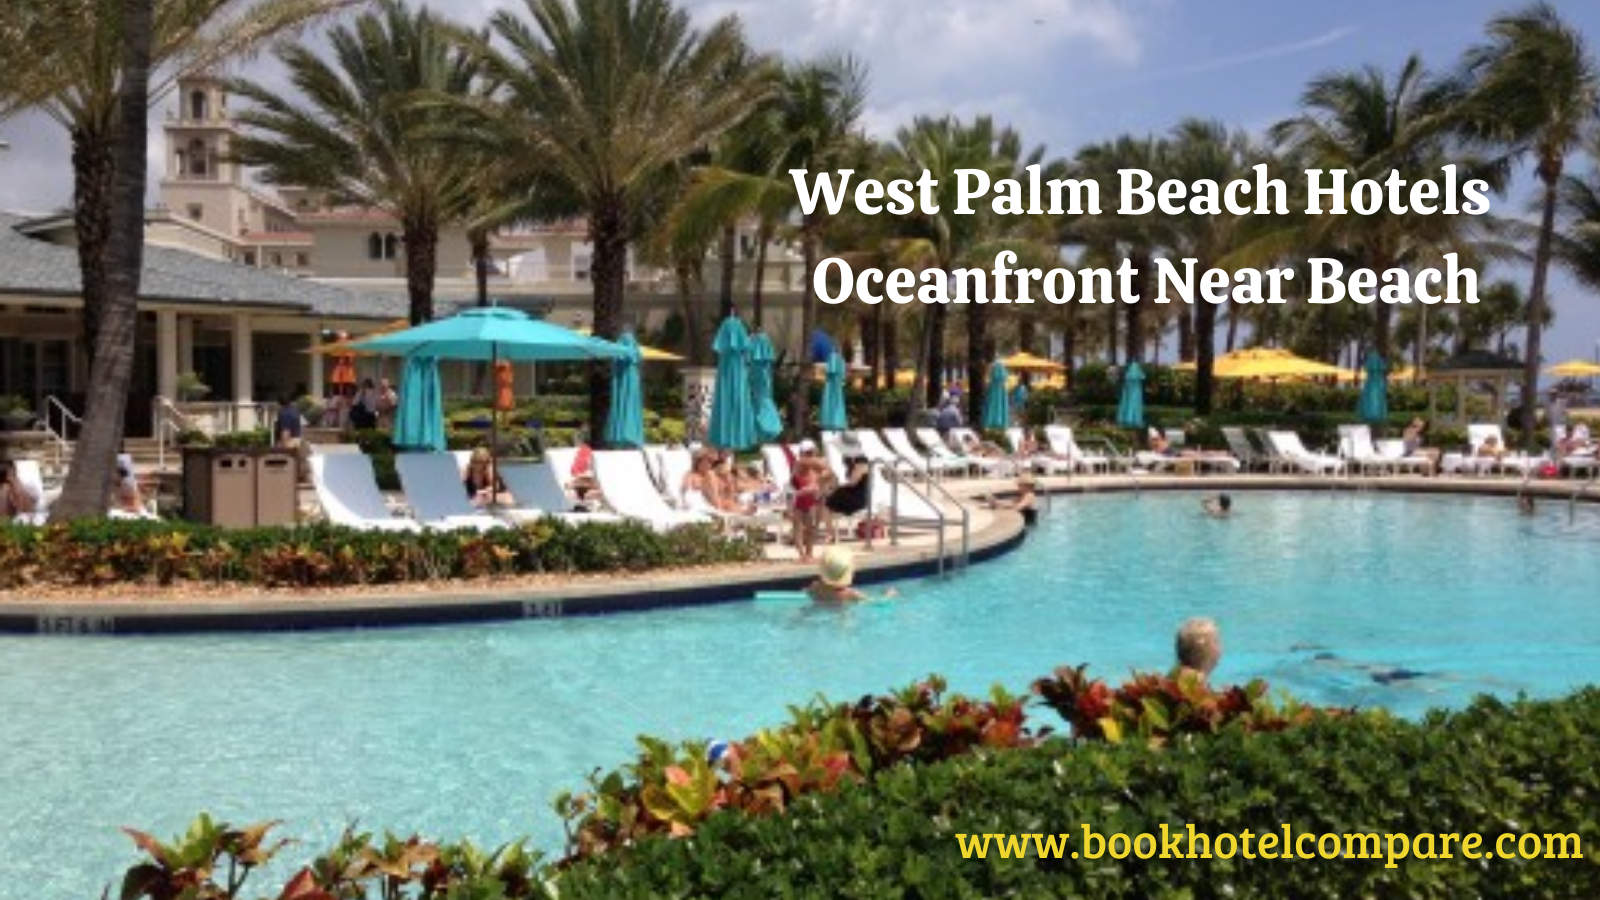 West Palm Beach Hotels Oceanfront Near Beach You'll enjoy listening to the waves crash on the shore at these Palm Beach within your budget - West Palm Beach hotels near the ocean. #westpalmbeach #palmbeach #onlinehotels #beachhotels #oceanfronthotels